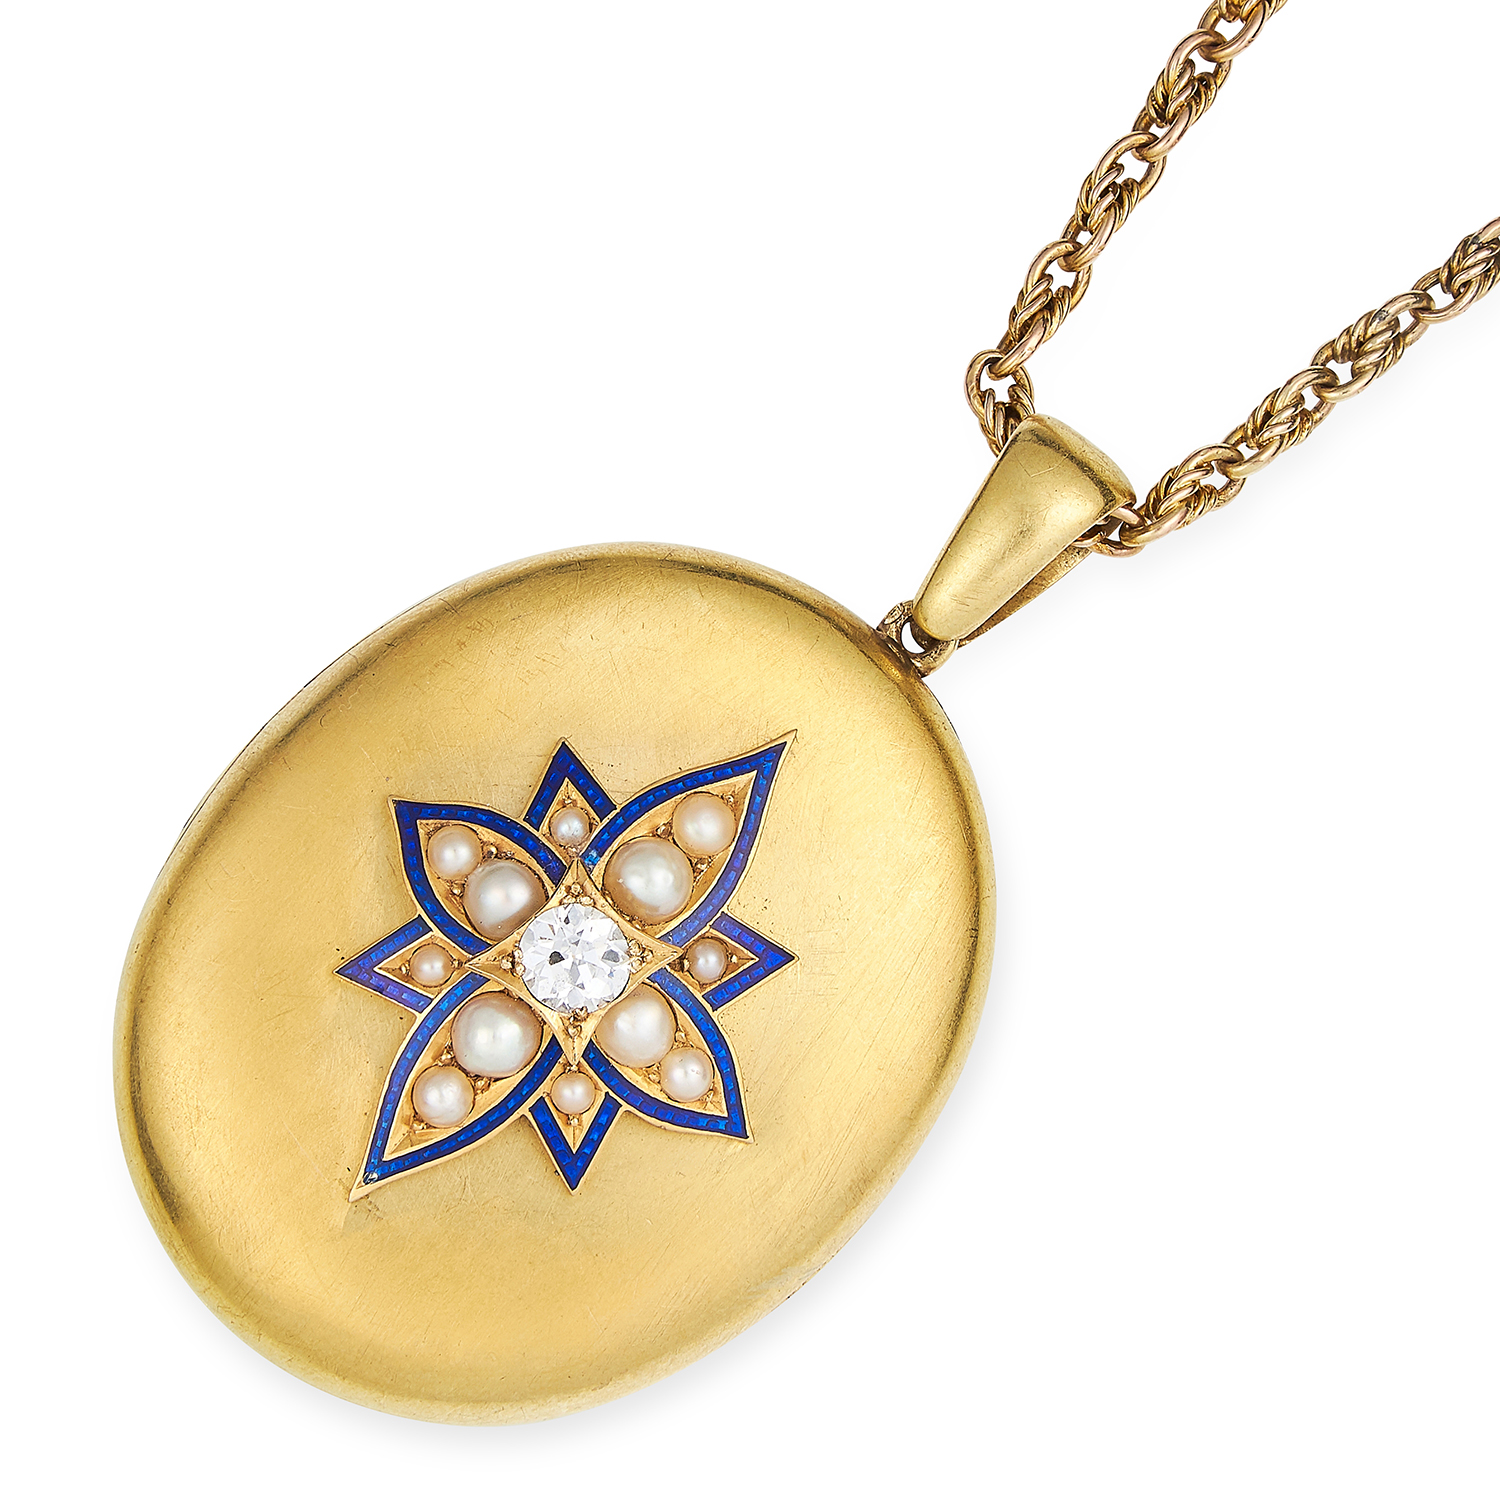 ANTIQUE VICTORIAN PEARL, DIAMOND AND ENAMEL LOCKET in high carat yellow gold, set with a round cut